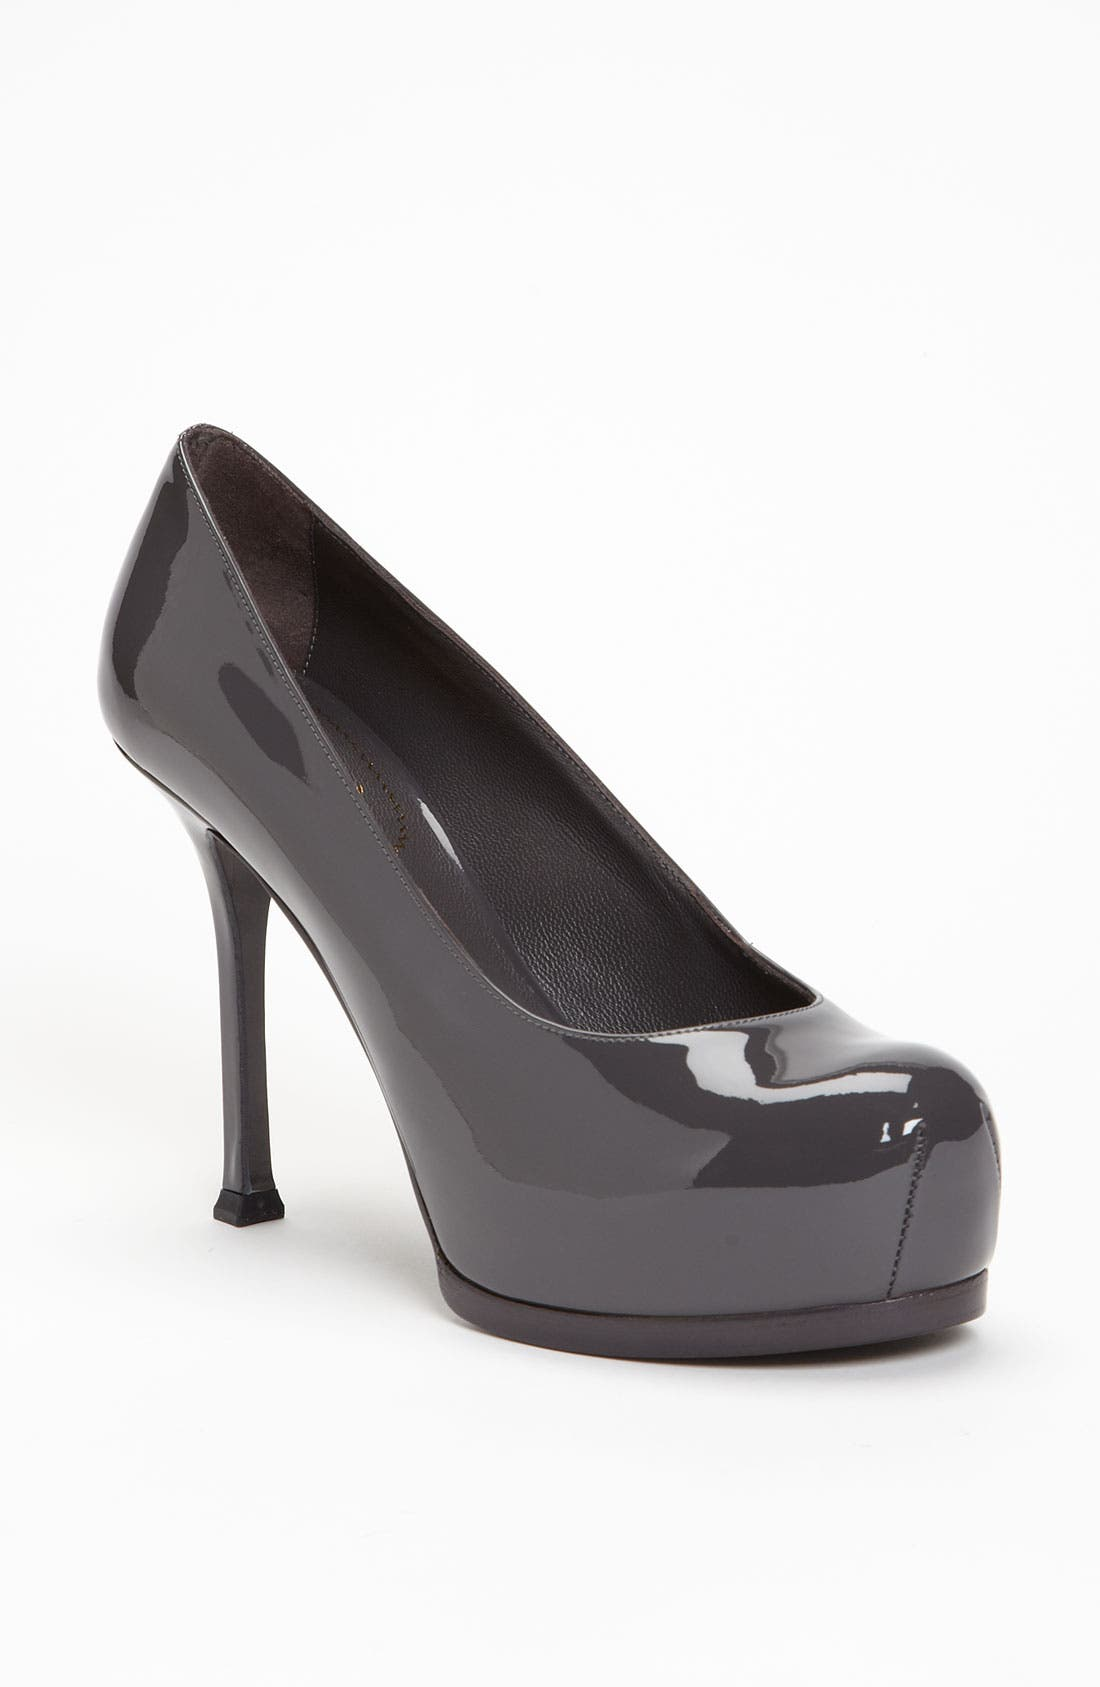 Main Image - Yves Saint Laurent 'Tribtoo' Pump